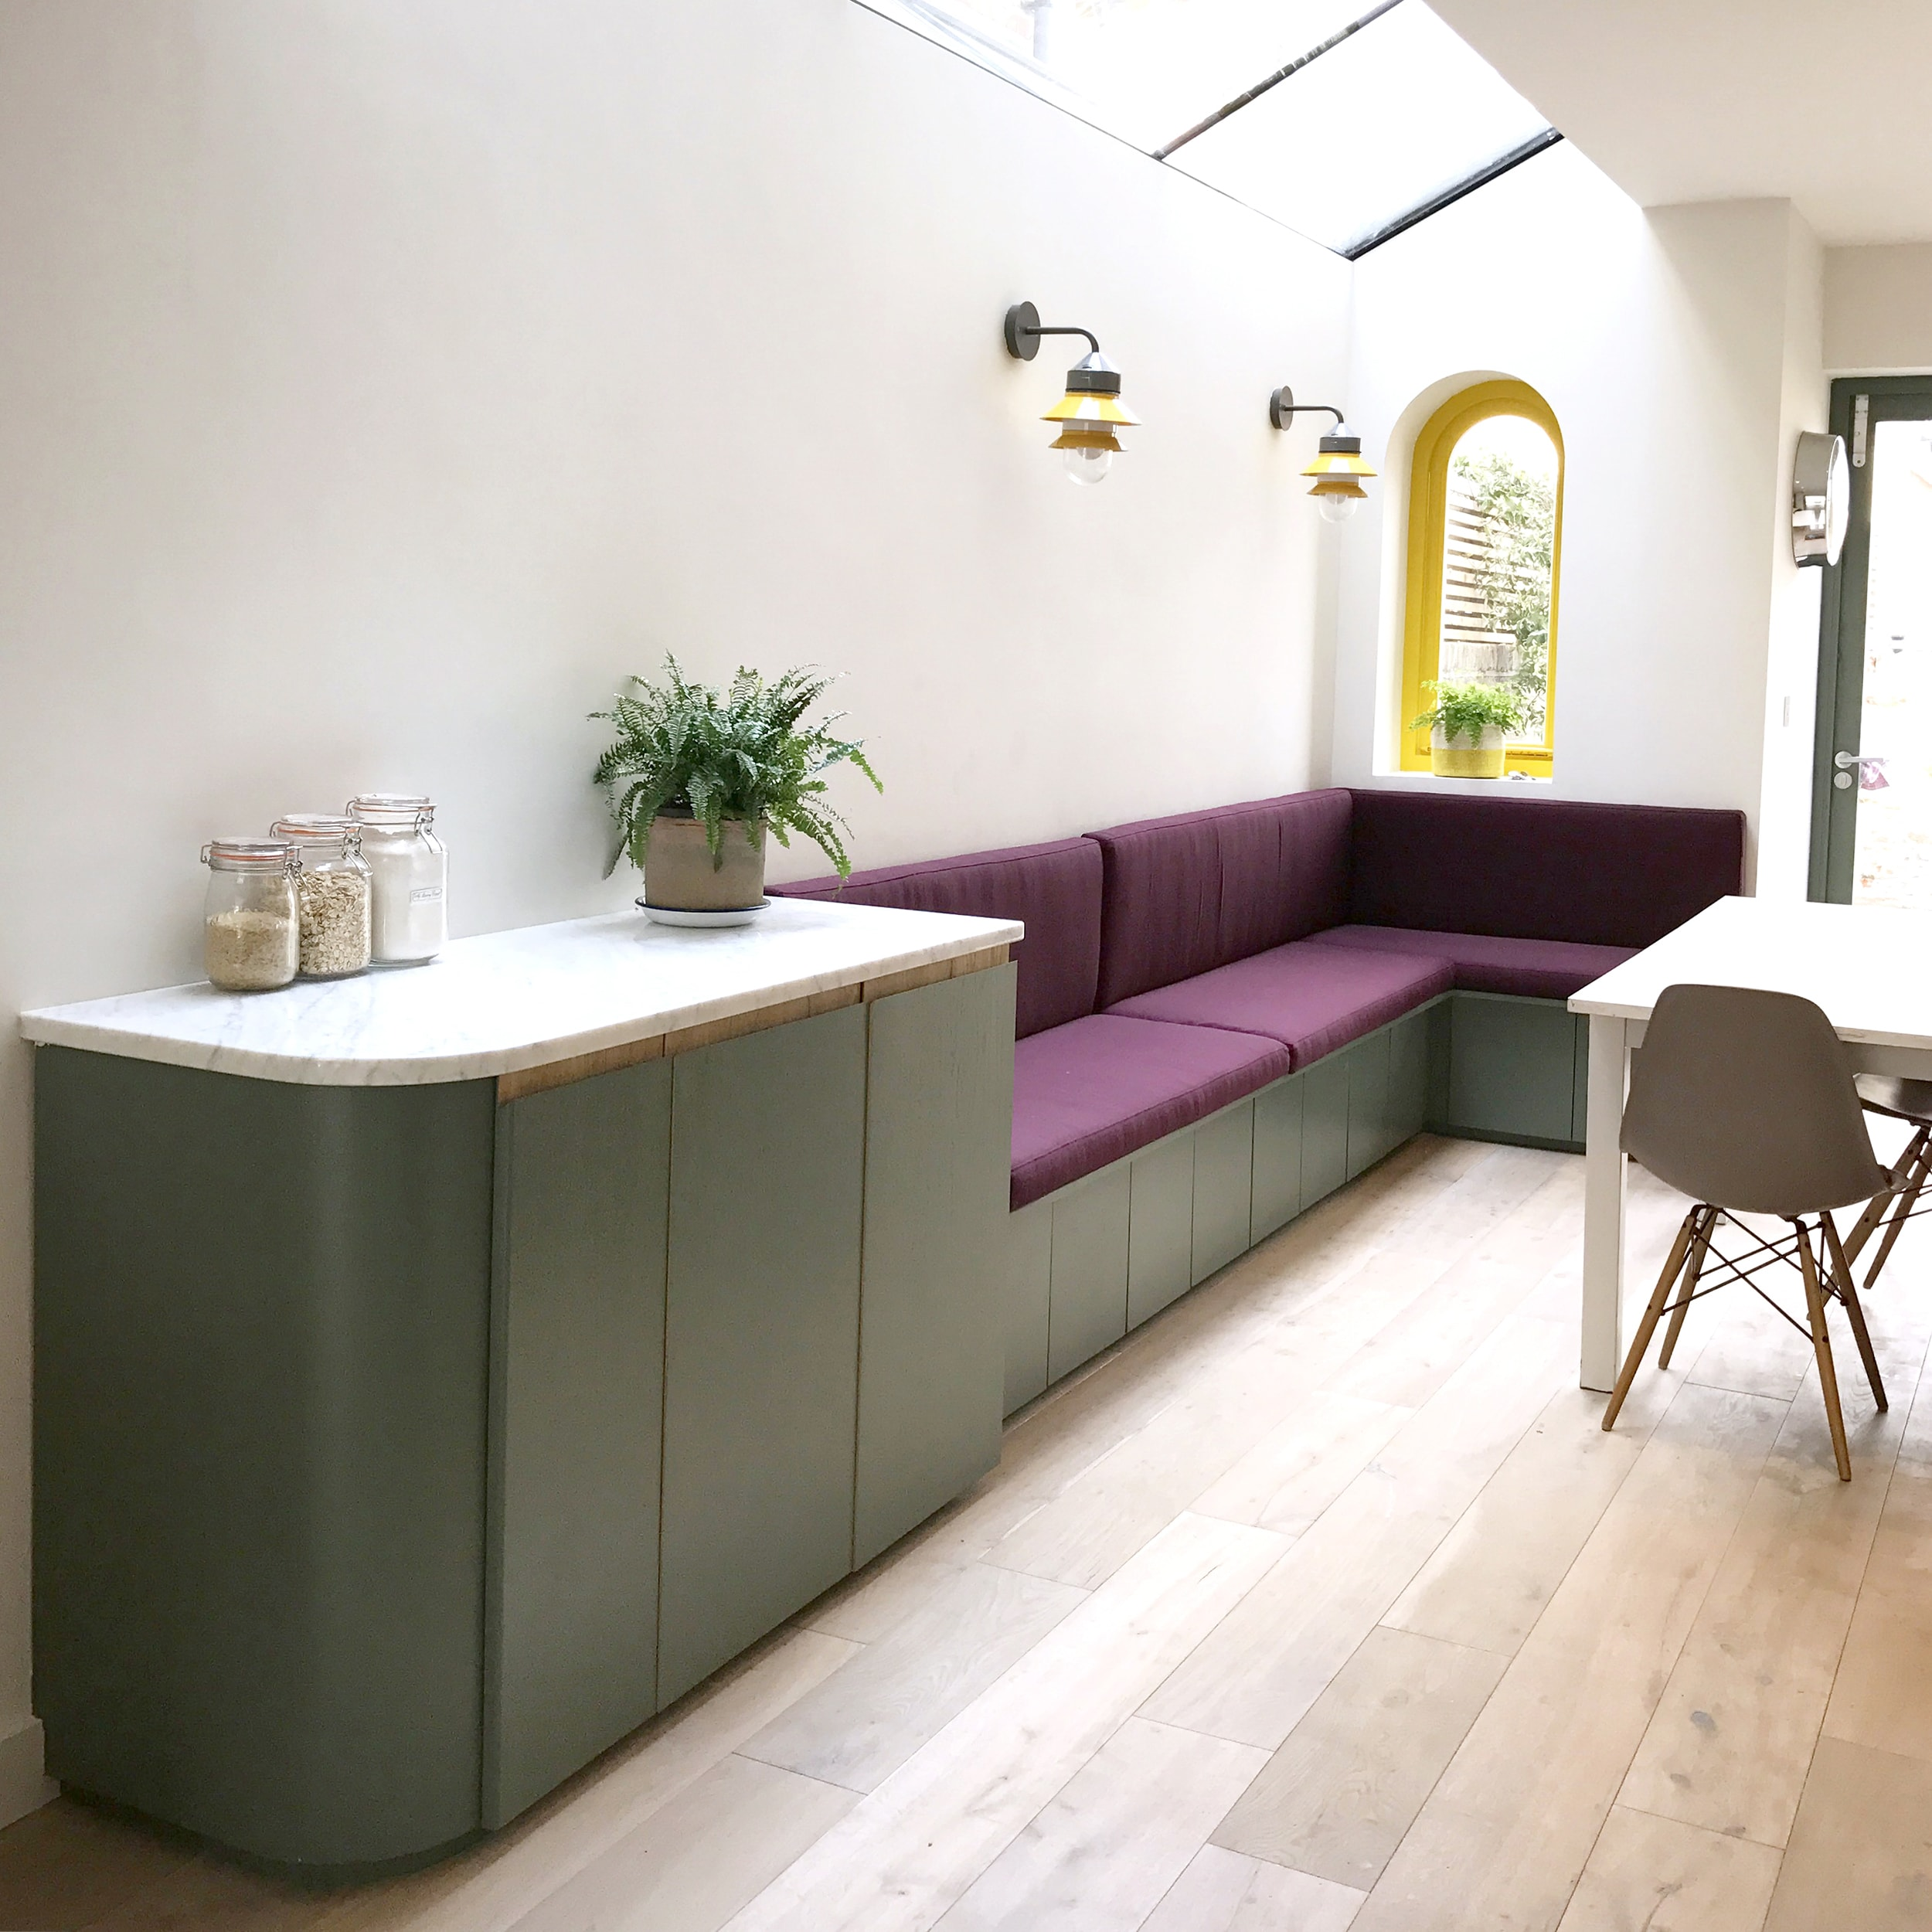 A long banquette provides ample space for entertaining and conceales ten hidden drawers.